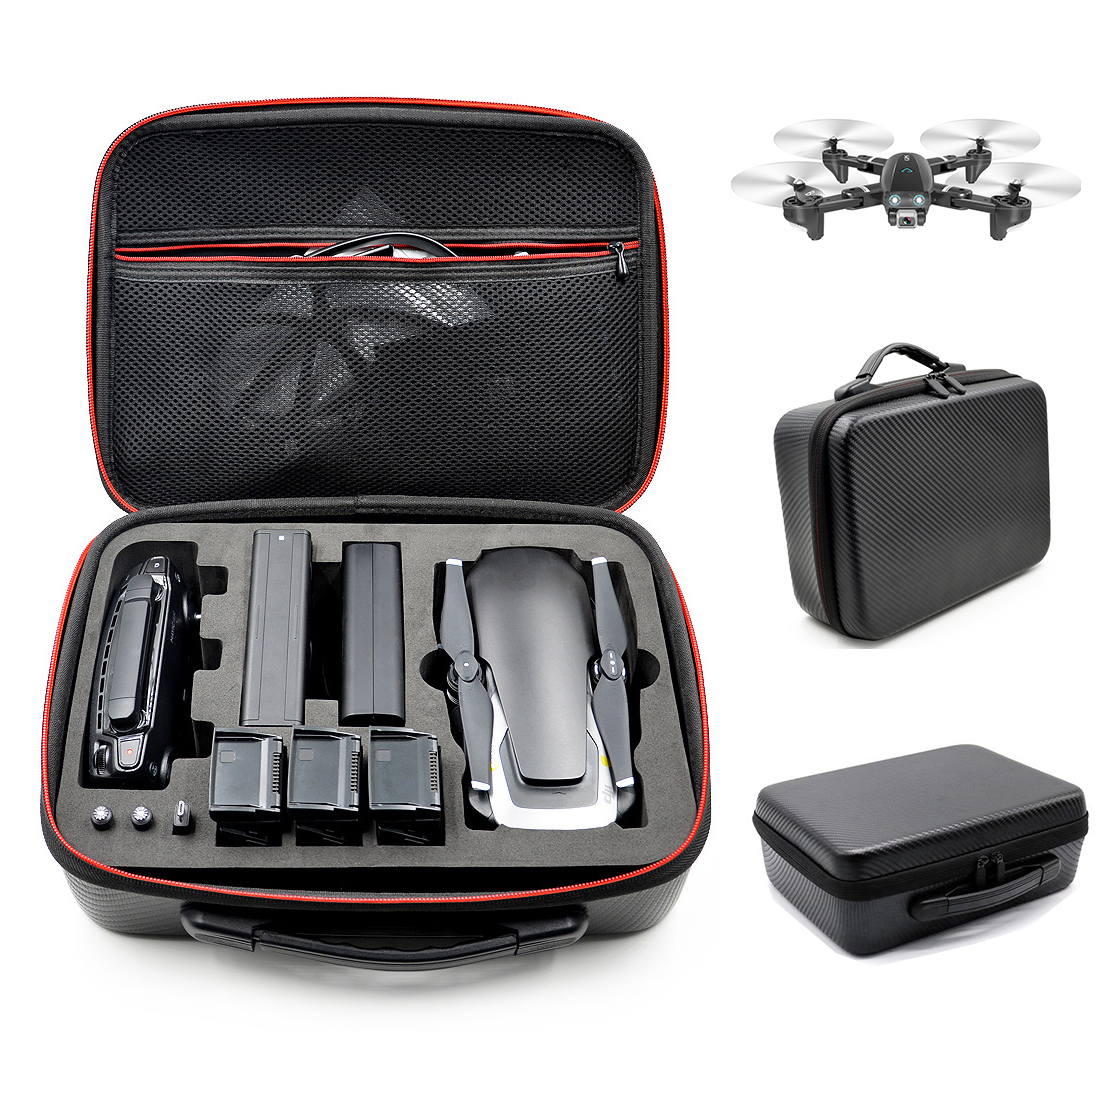 1x Shoulder Storage Box Carrying Case Bag for DJI Mavic Air Drone Accessory